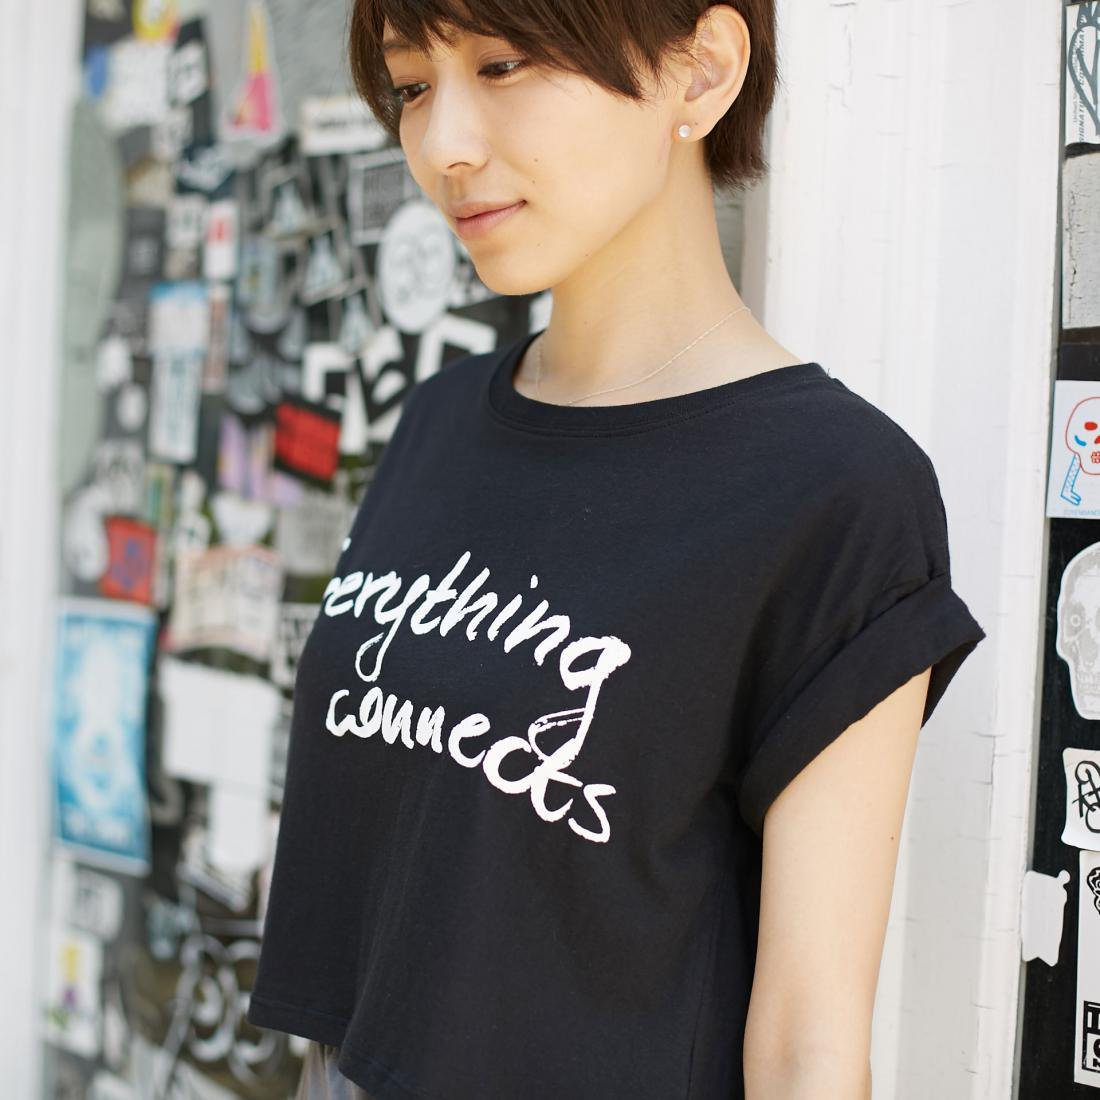 【COSSAC】EVERYTHING CONNECTS / Tシャツ